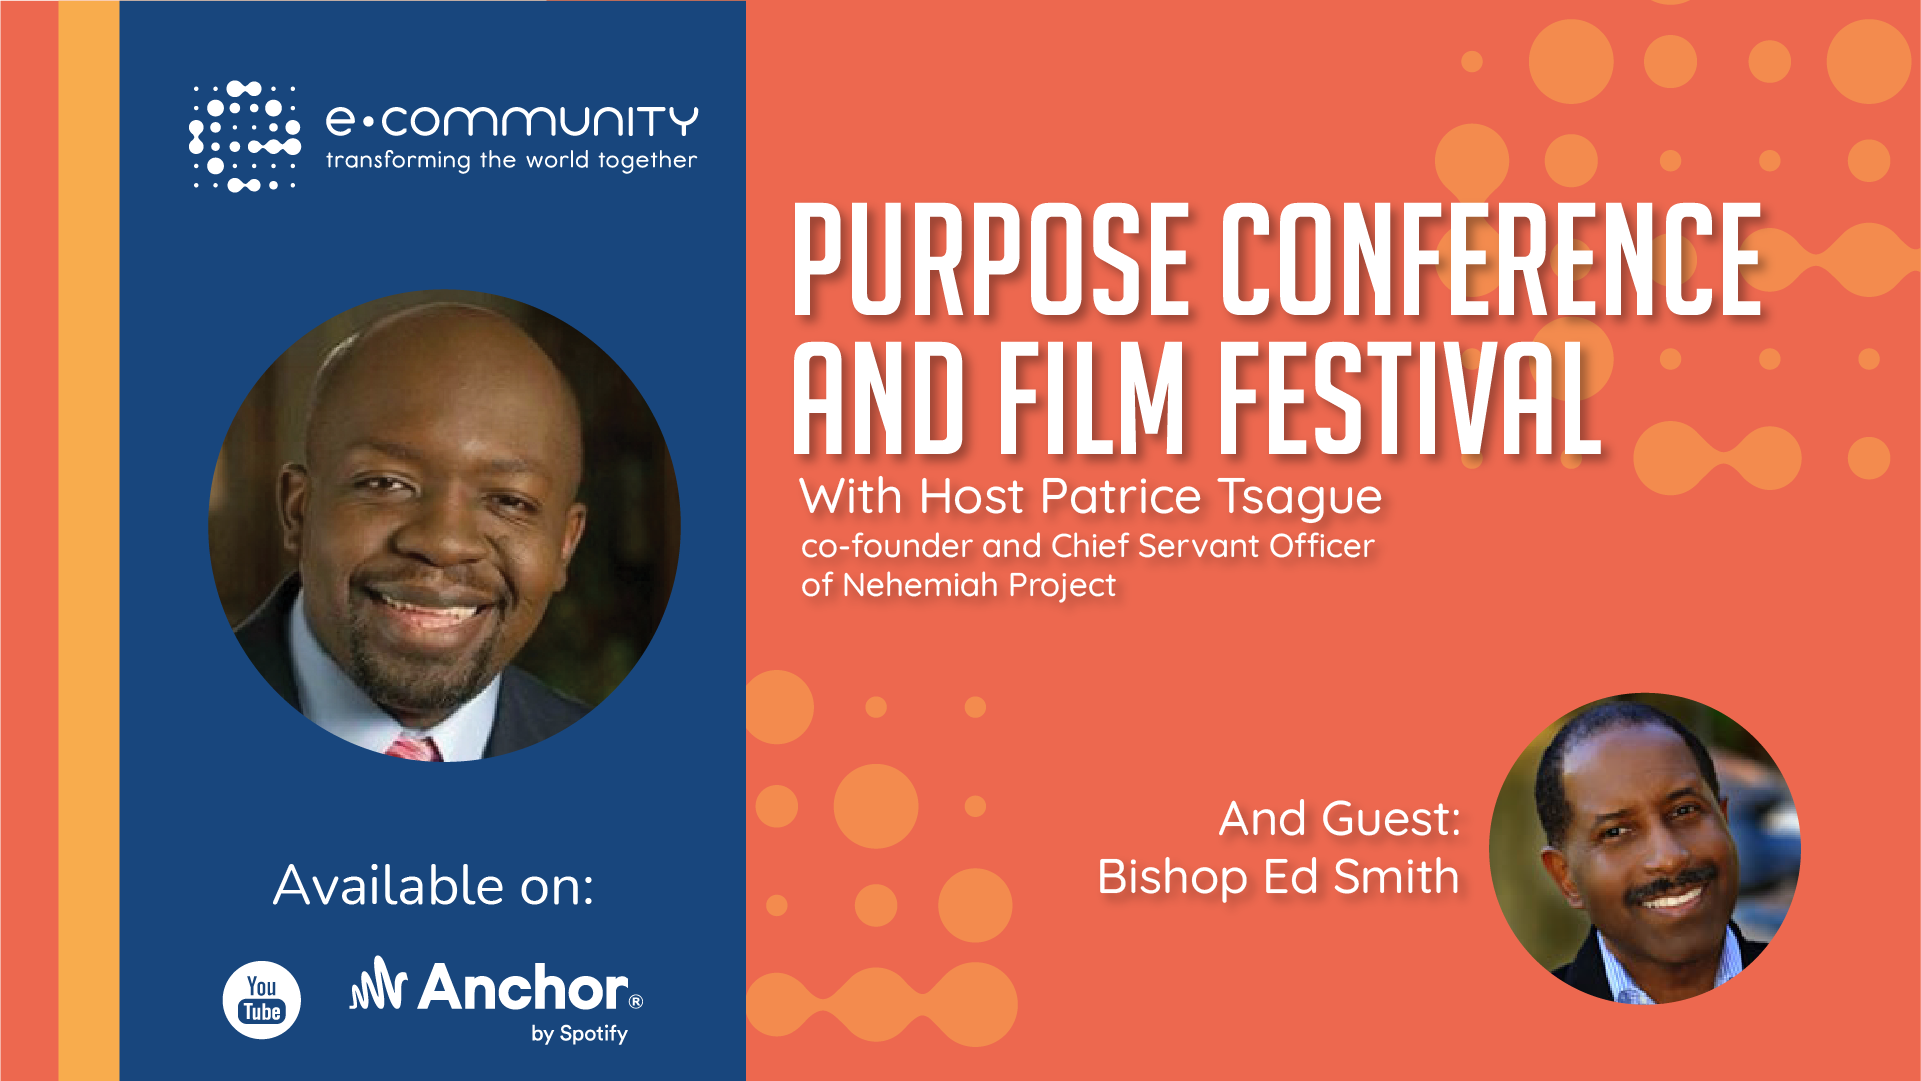 Purpose Conference and Film Festival